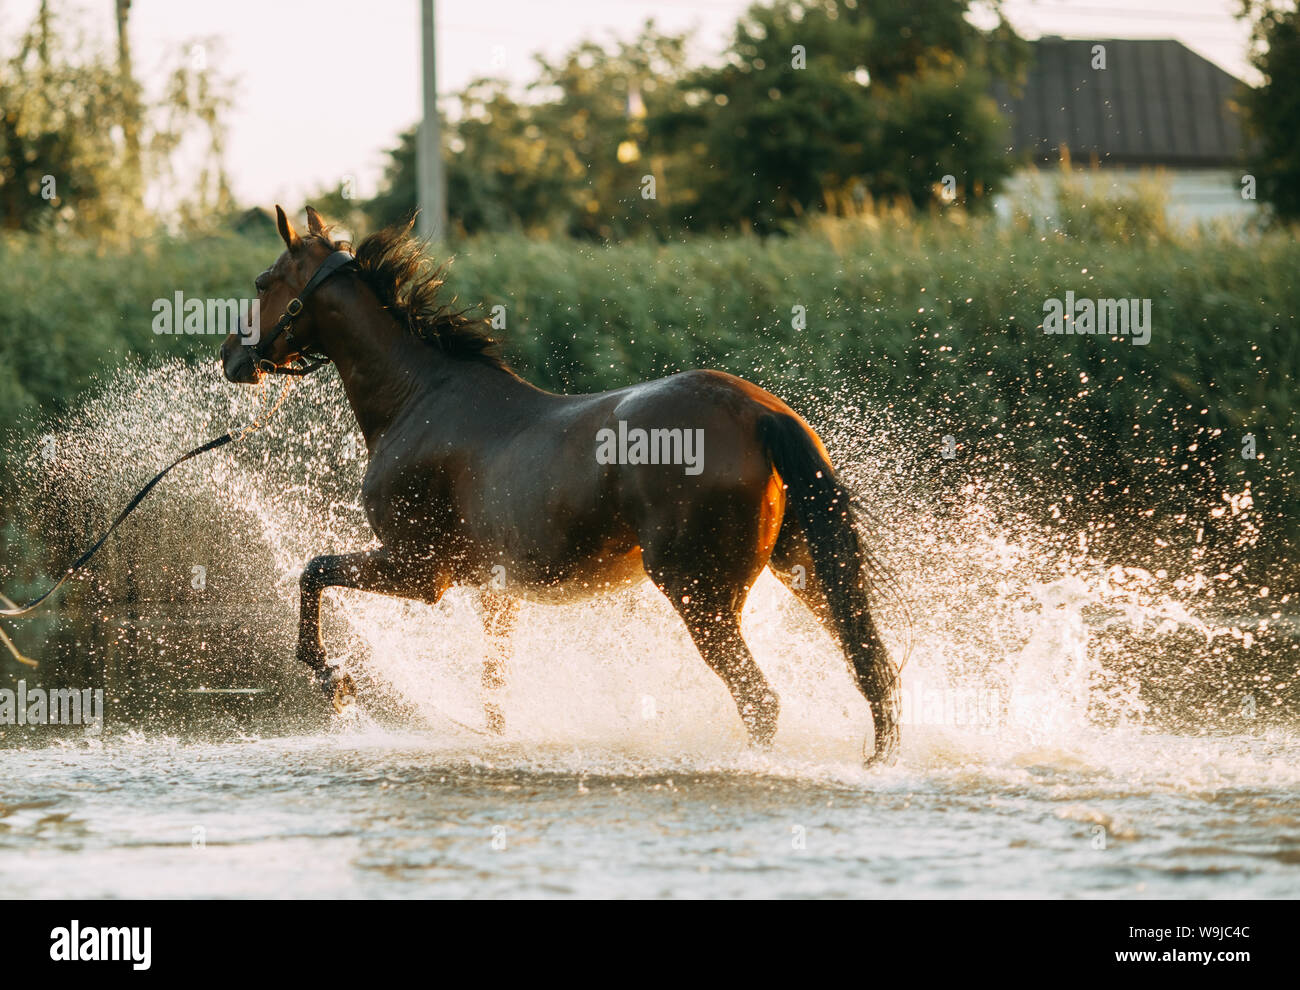 A brown horse runs through the water and produces a lot of splashes. Stock Photo